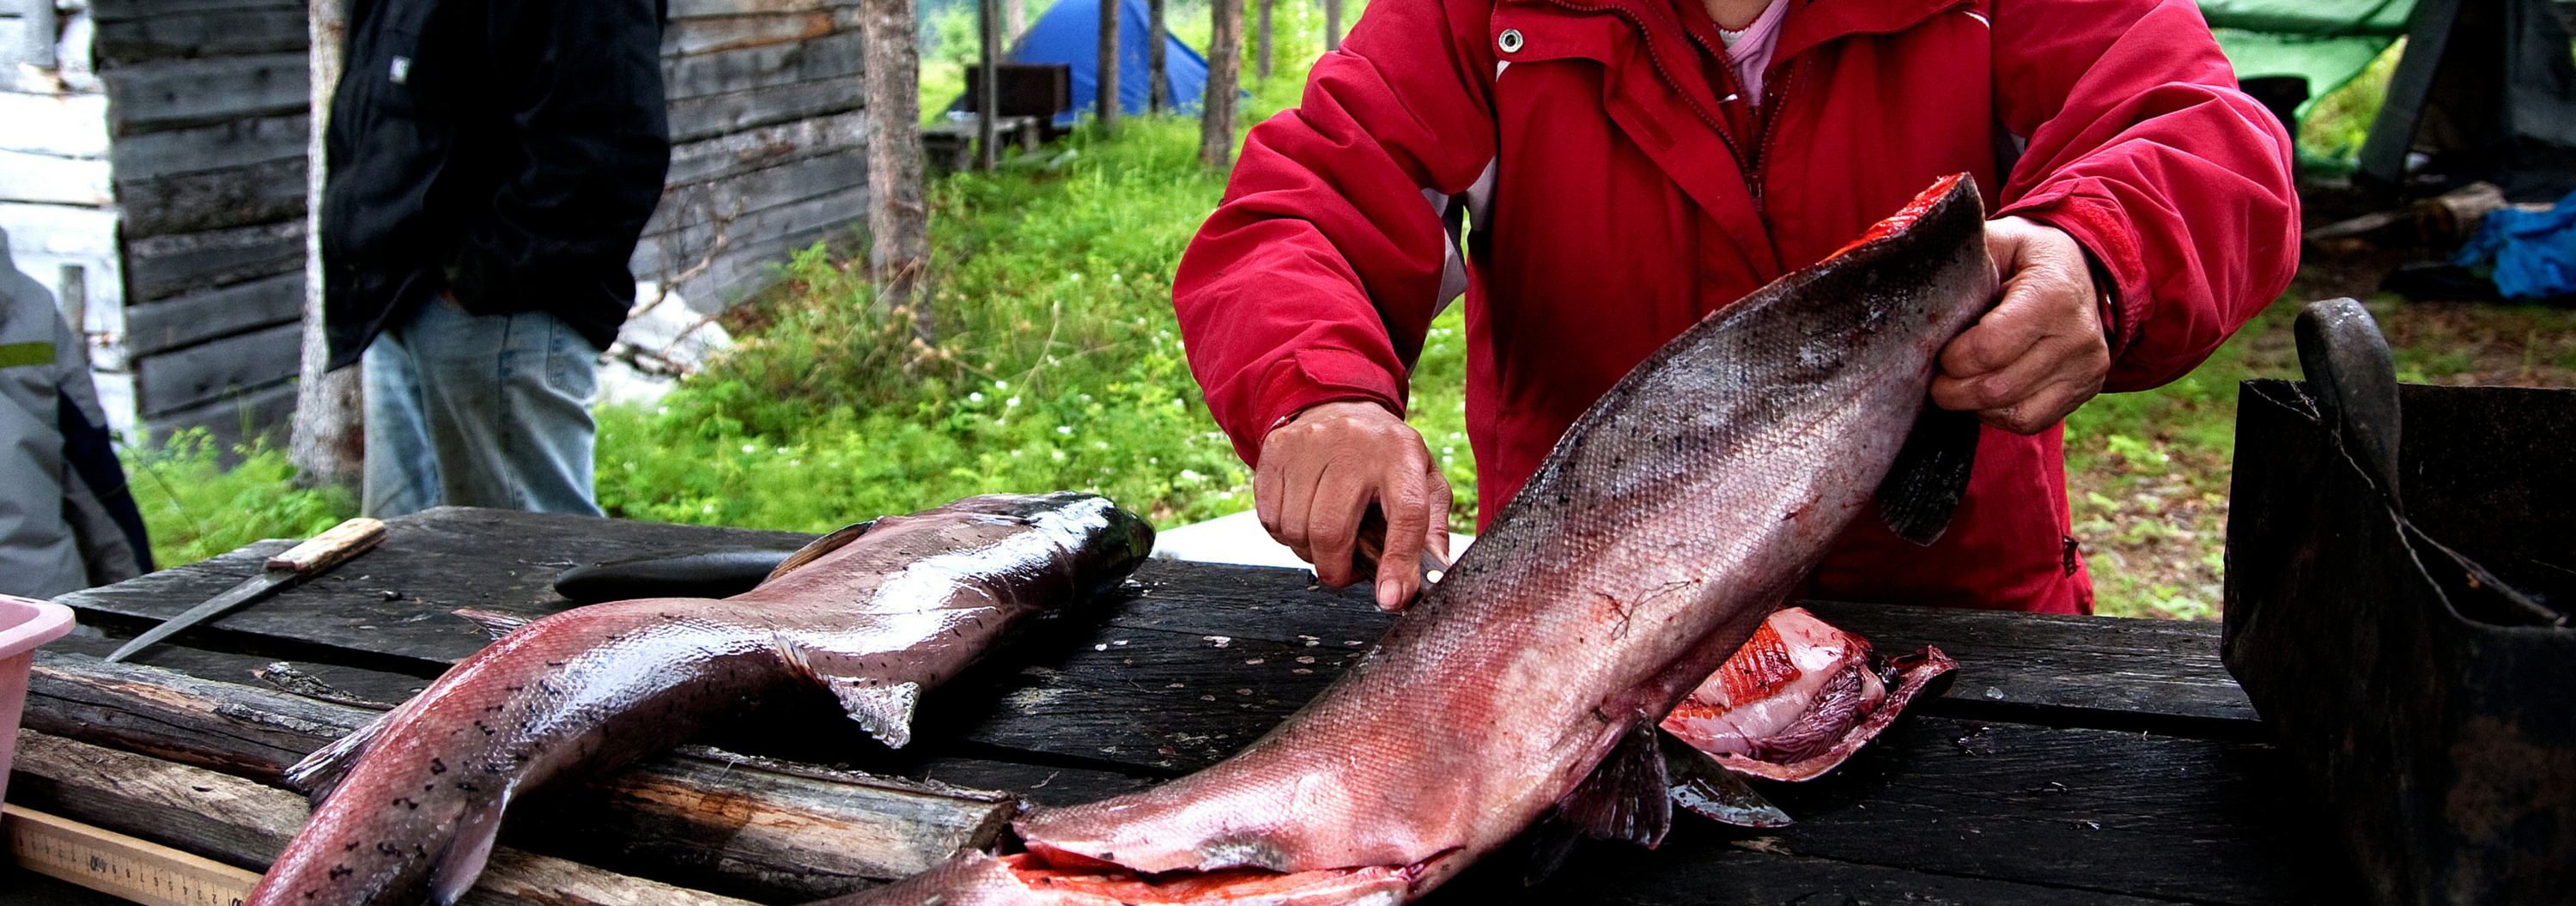 A woman cleans a fish.